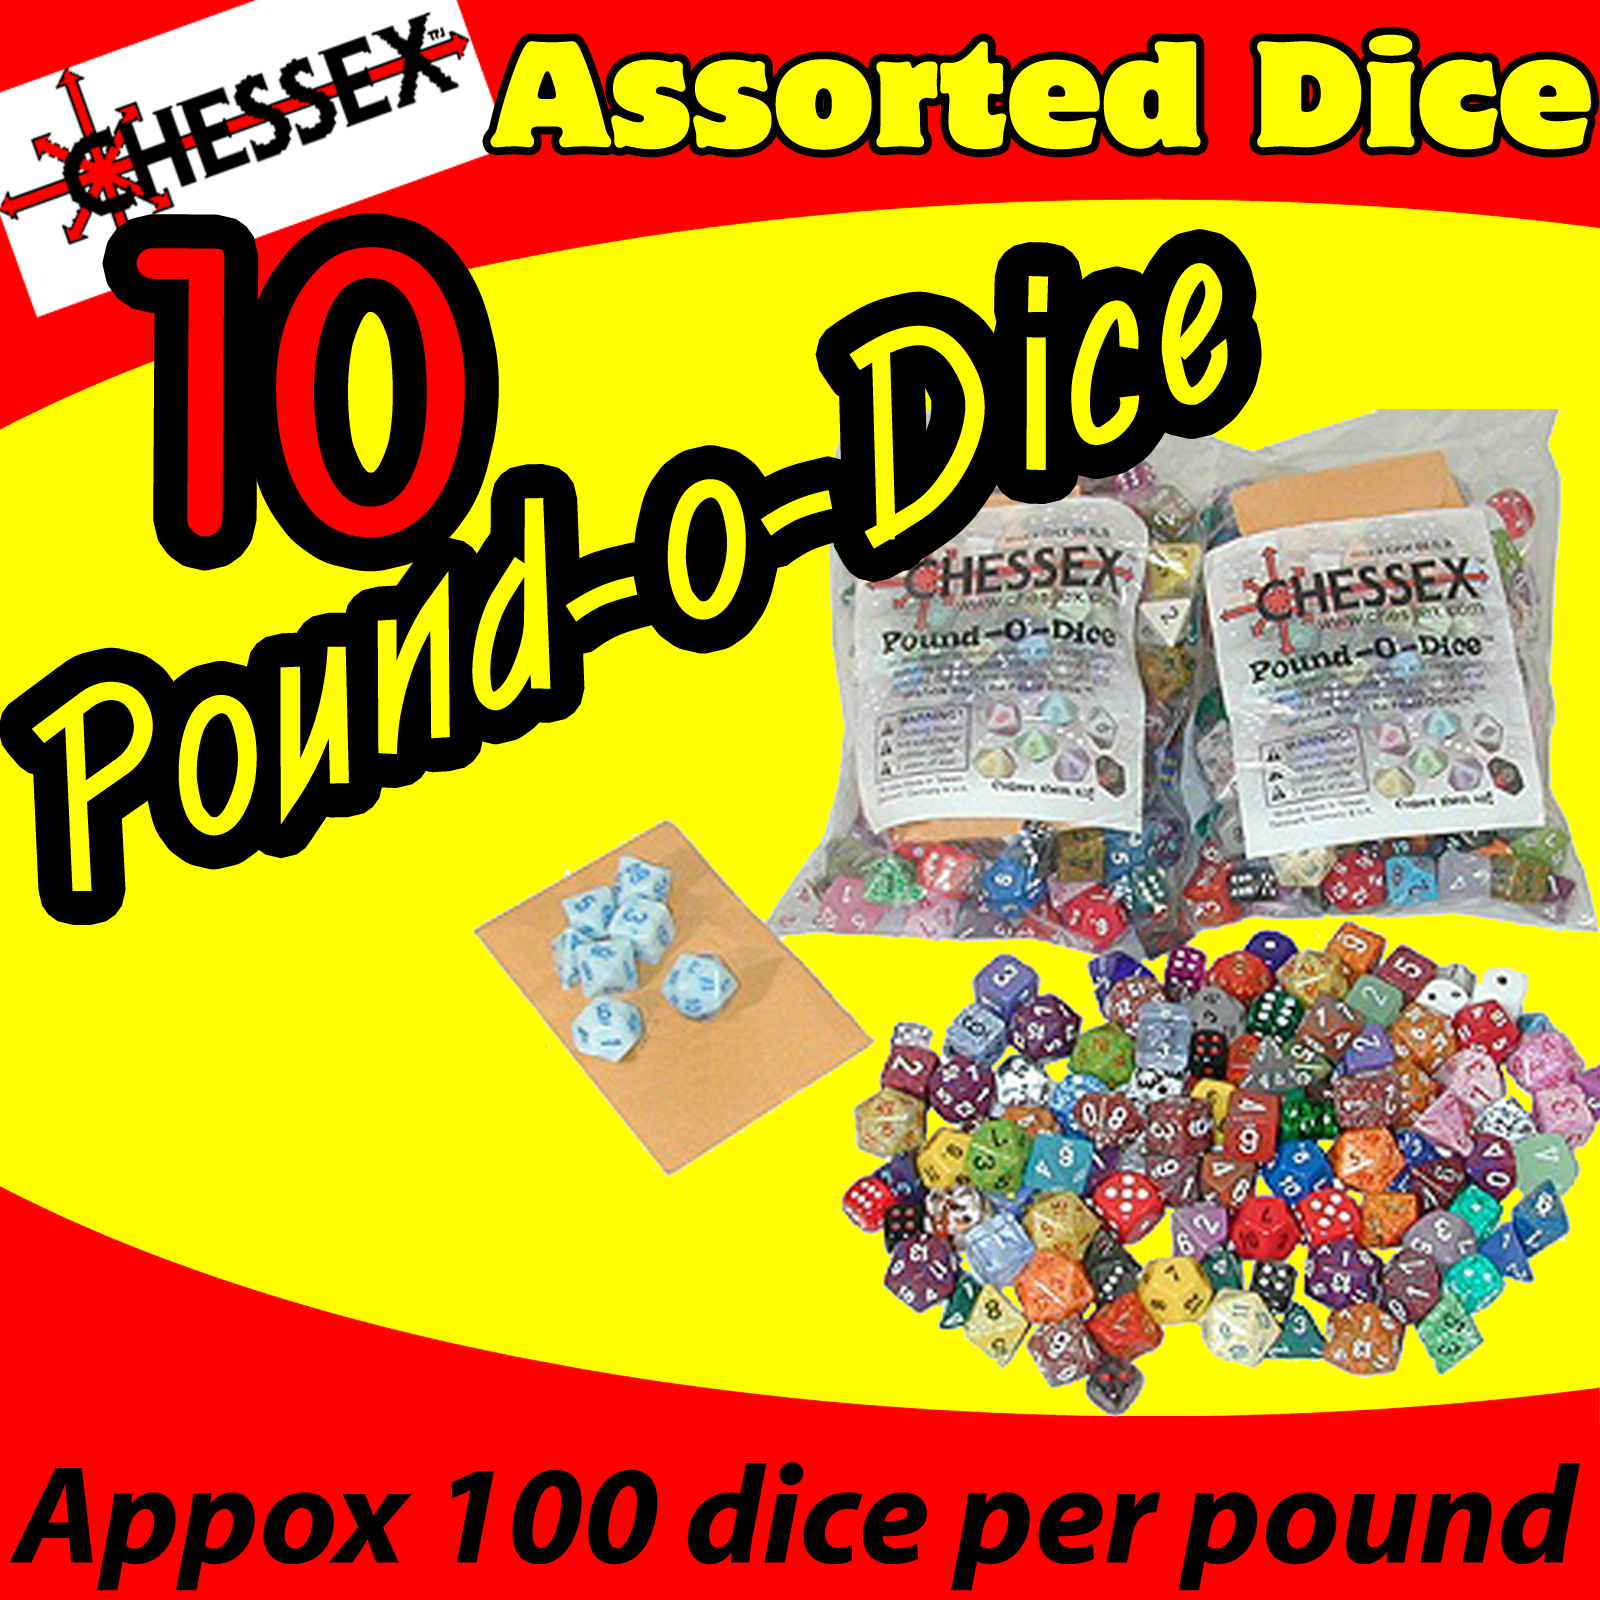 Chessex Pound O Dice (10 lbs) USA SHIPPING